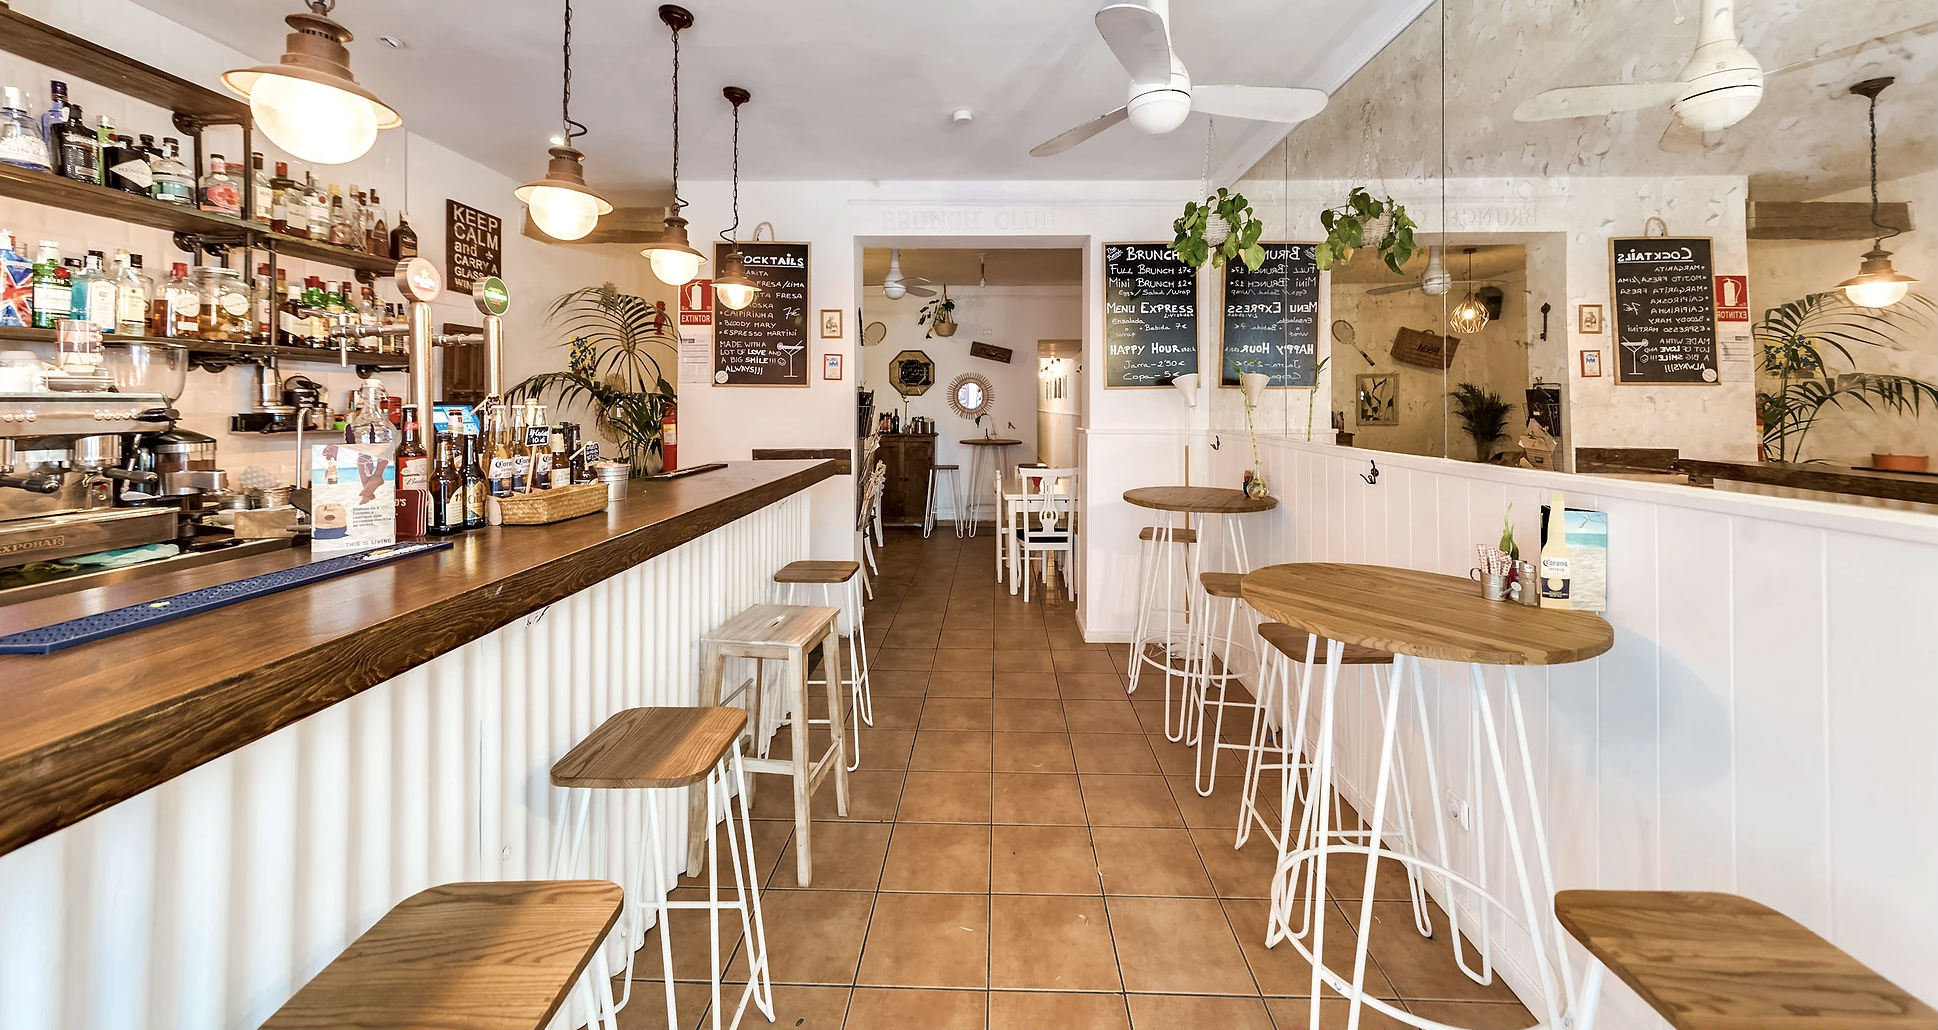 Teatro-Maravillas-Malasana-sin-gluten-Brunch-Club-Cafe.jpg